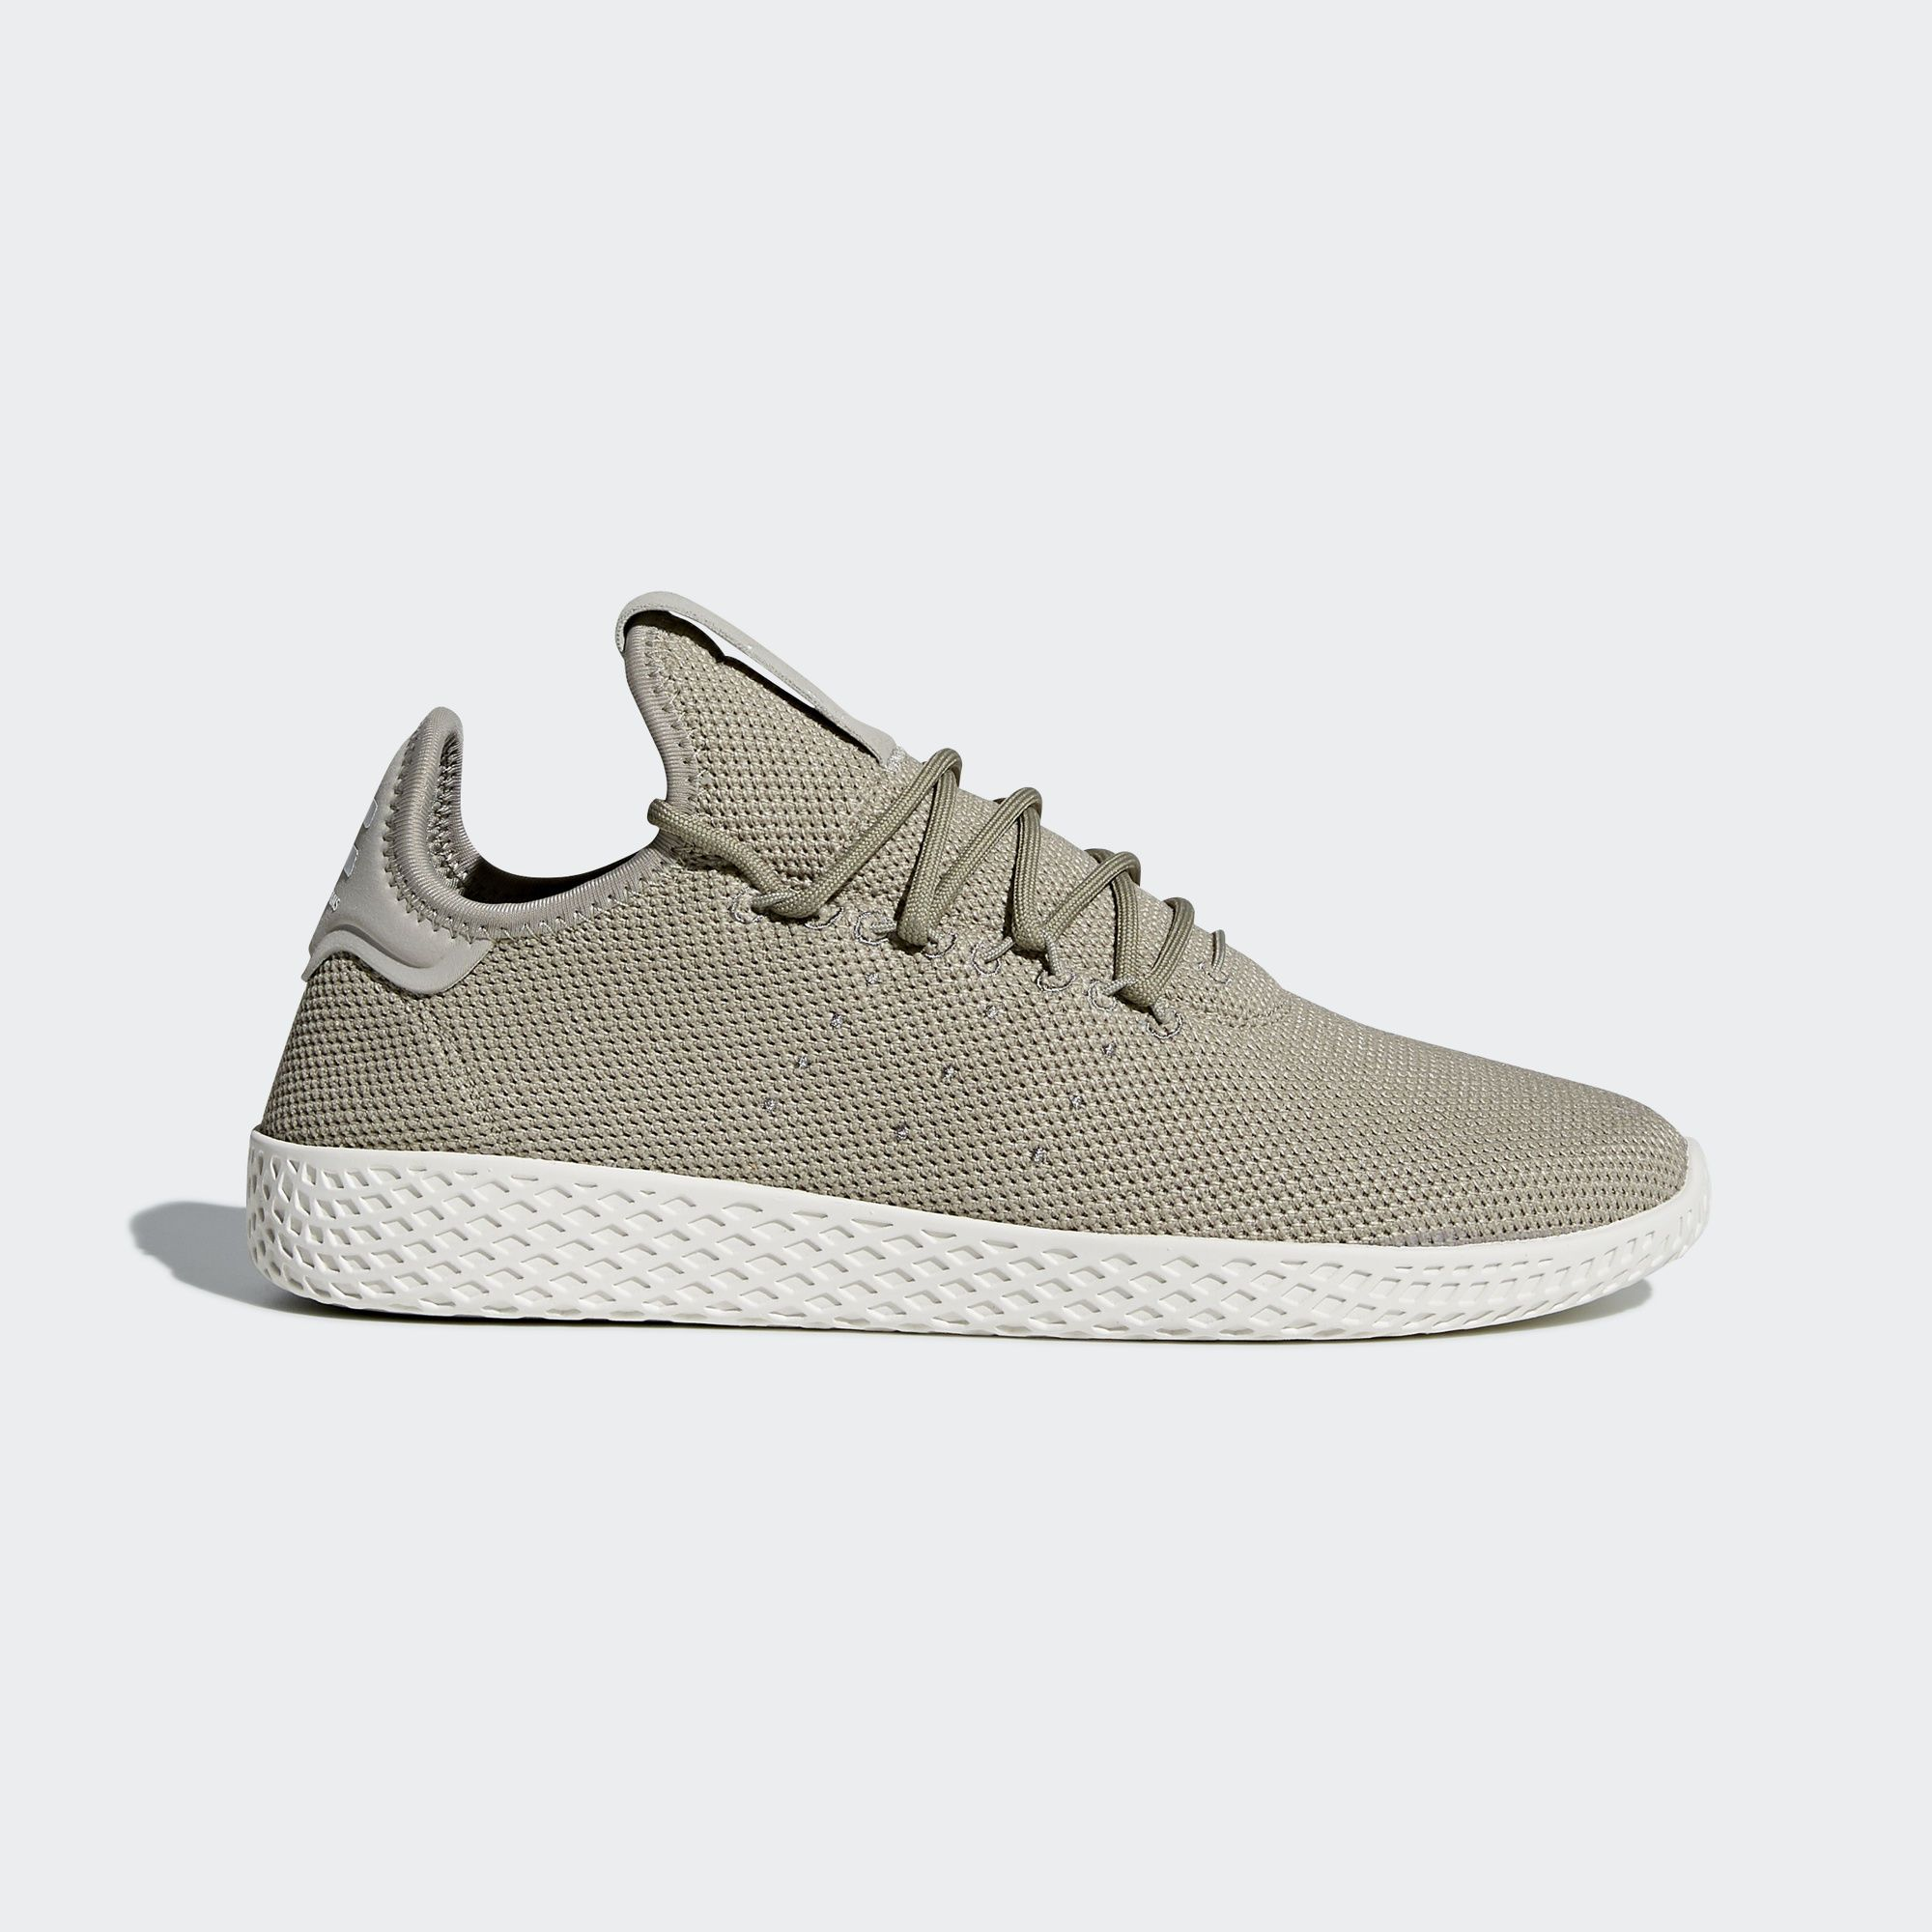 Adidas Williams Tennis De Pharrell Hu Formateurs - Vert 2IPOE23jh